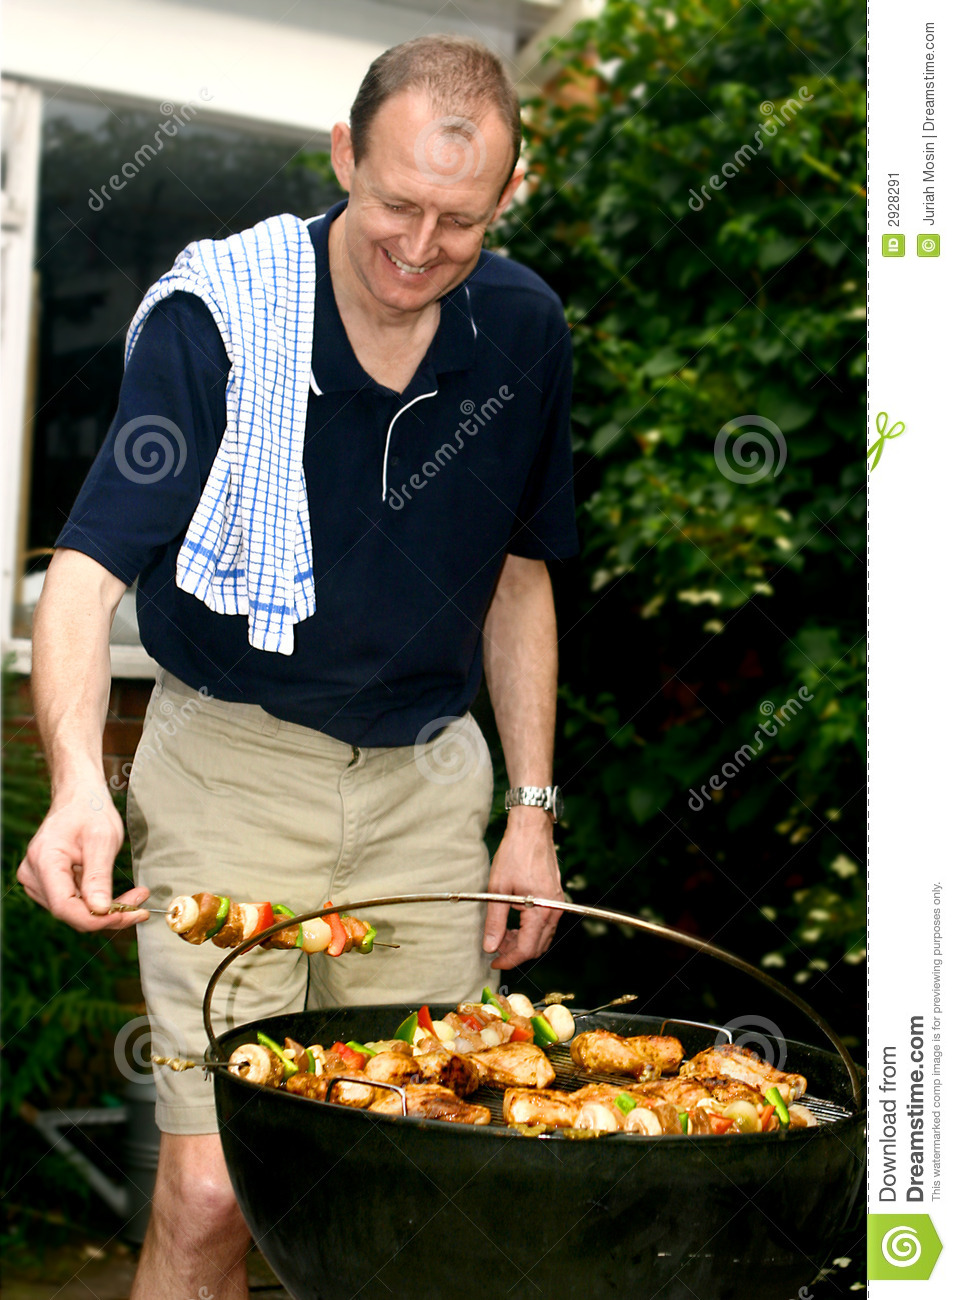 Man tending barbecue